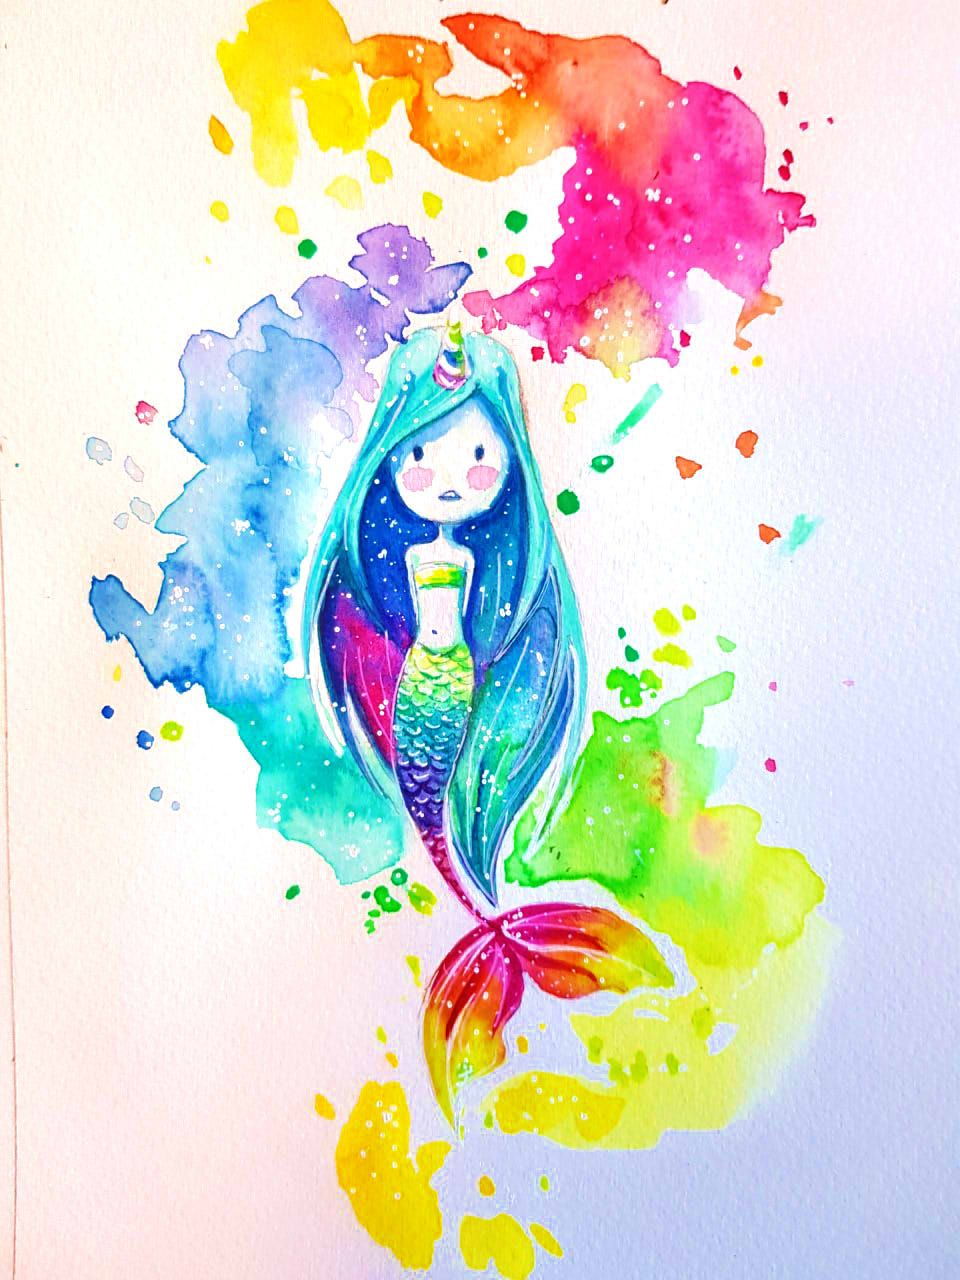 Illustration Aquarelle Sirene Licorne Arc En Ciel Watercolor